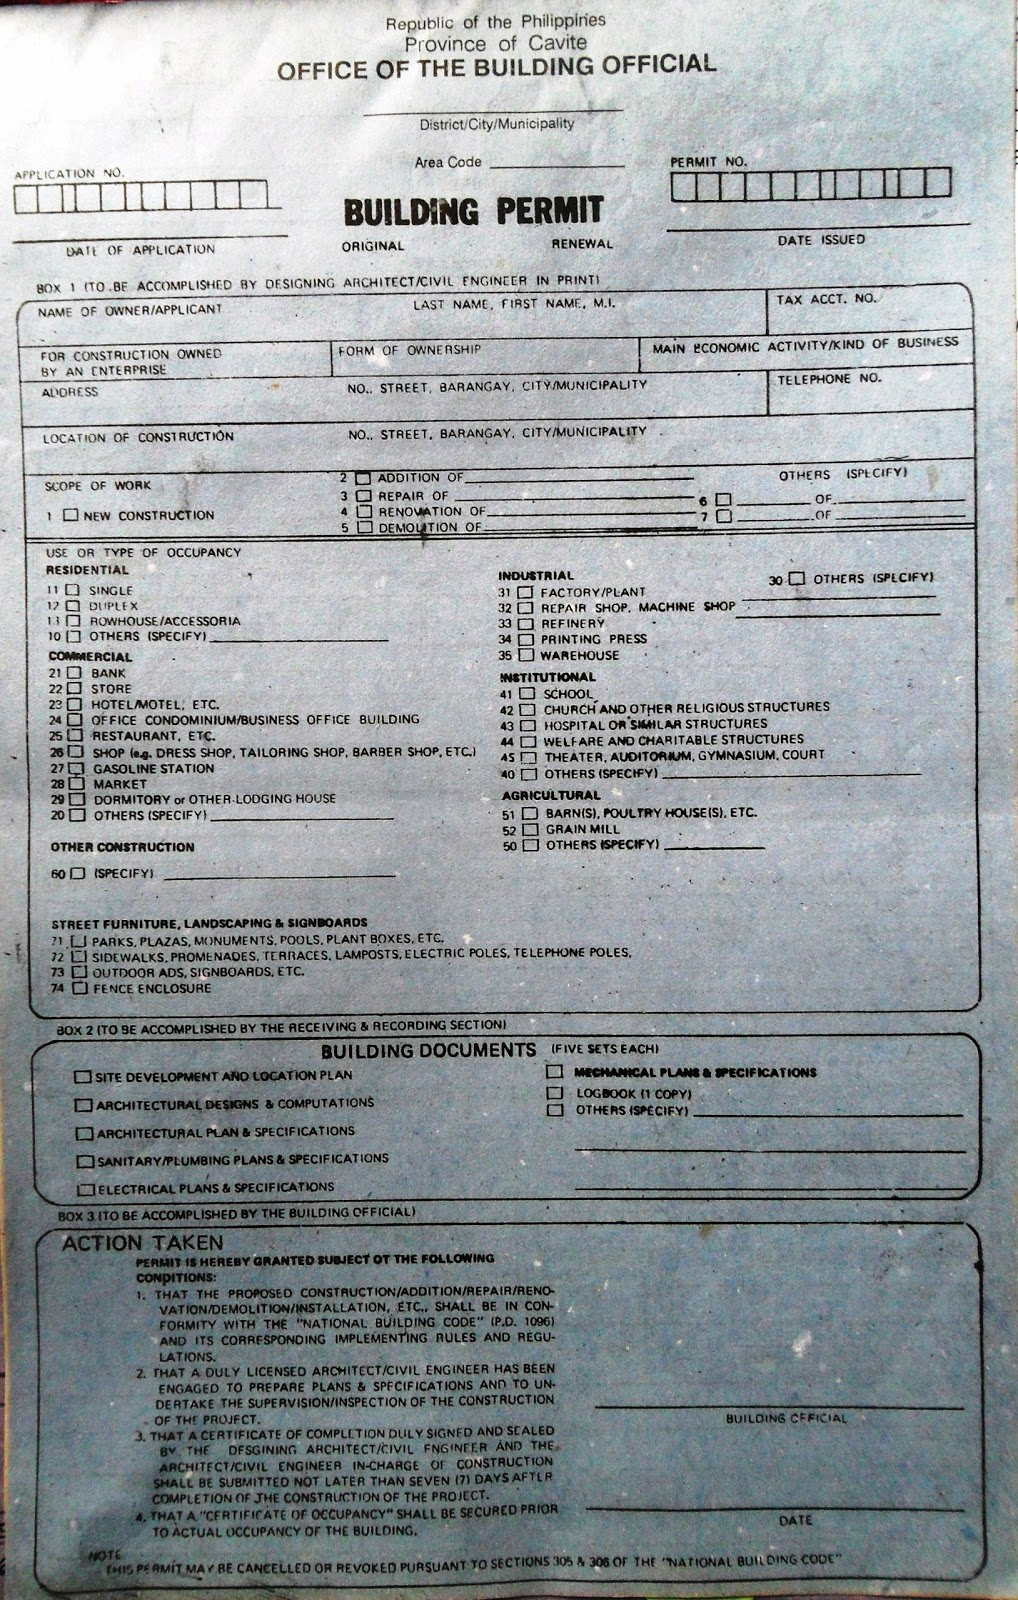 Ang Pananaw ng Isang Simpleng Inhinyero HOW TO APPLY FOR A BUILDING PERMIT IN THE PHILIPPINES